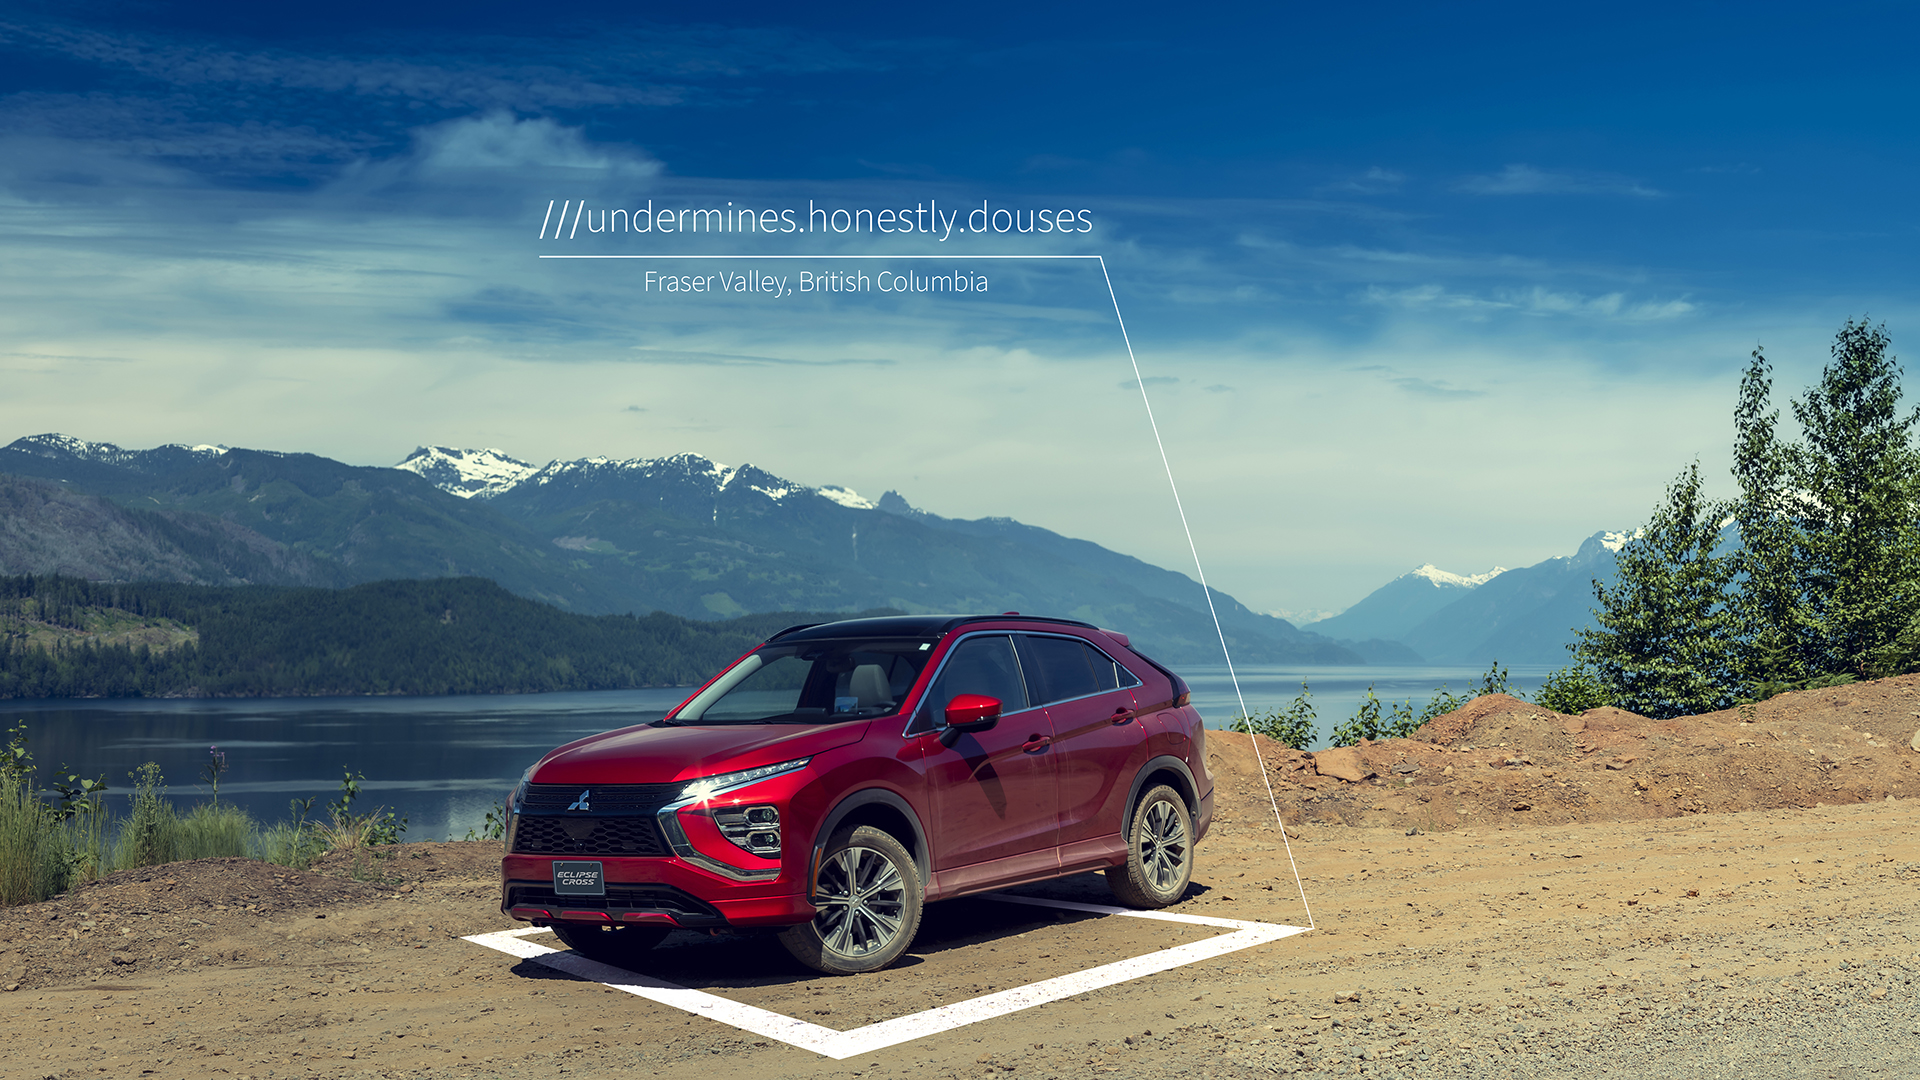 2022 Mitsubishi Eclipse Cross With what3words Offline (Fraser Valley-2)